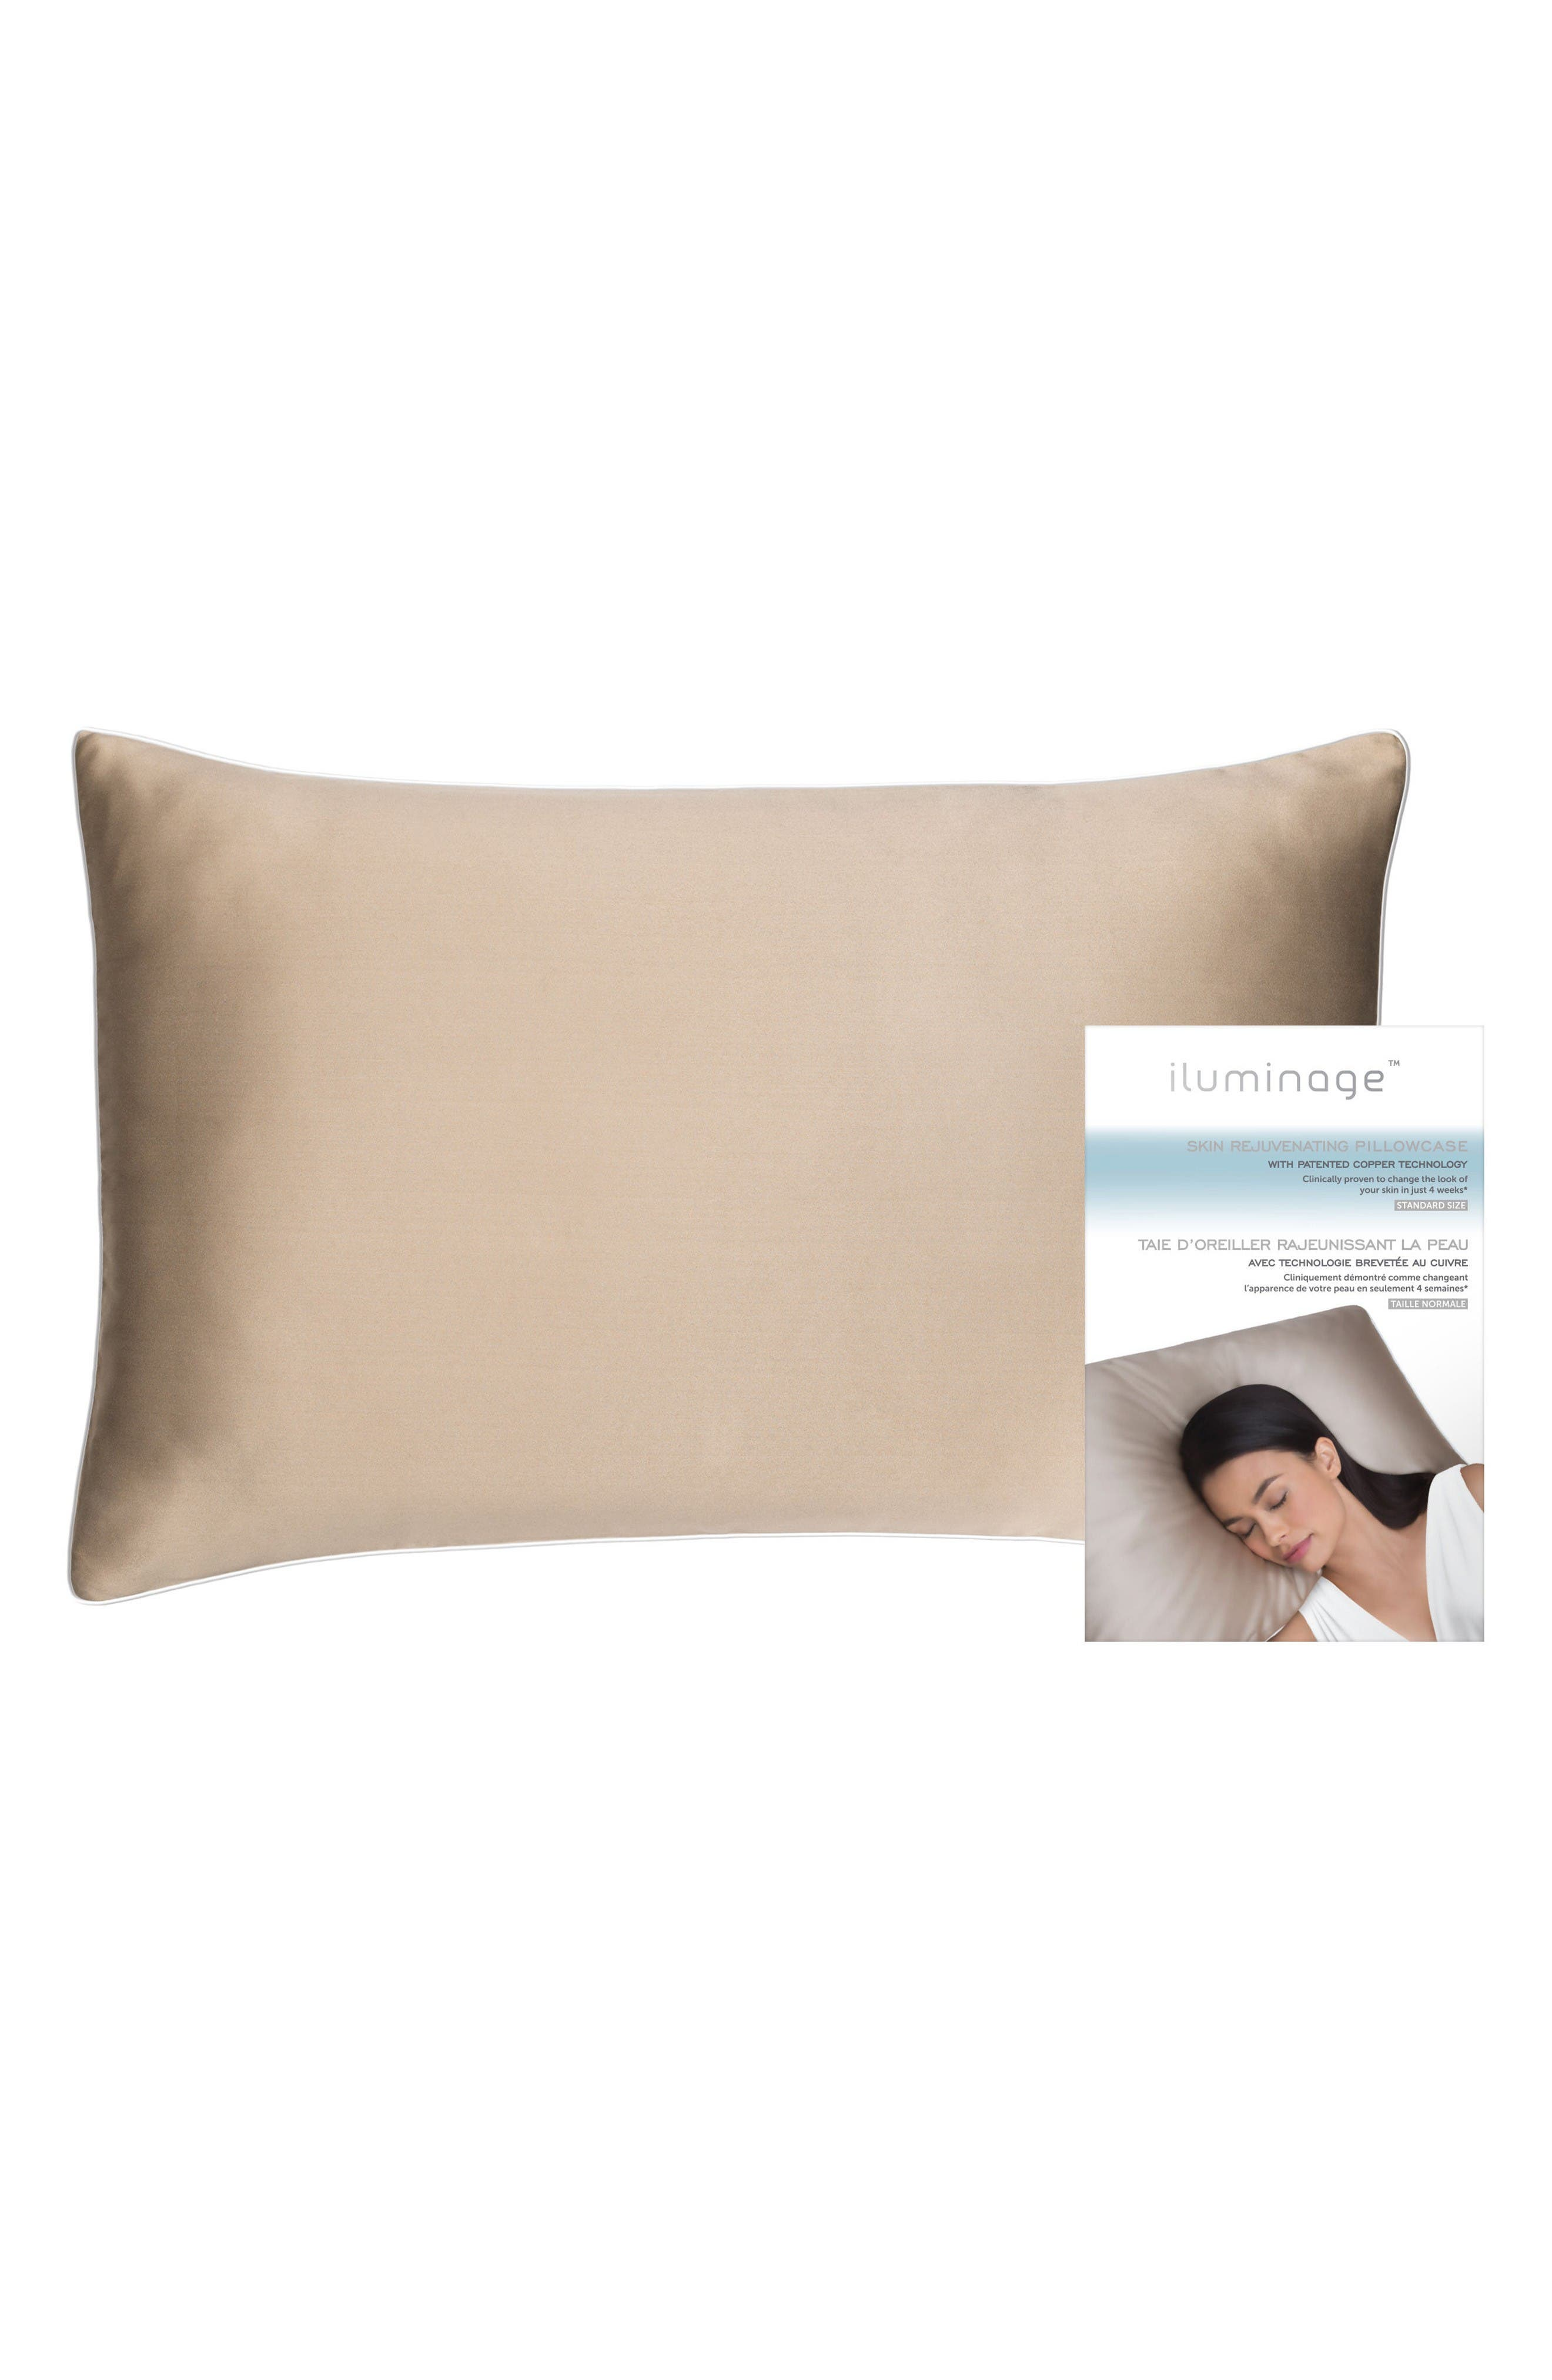 Skin Rejuvenating Pillowcase,                         Main,                         color, No Color